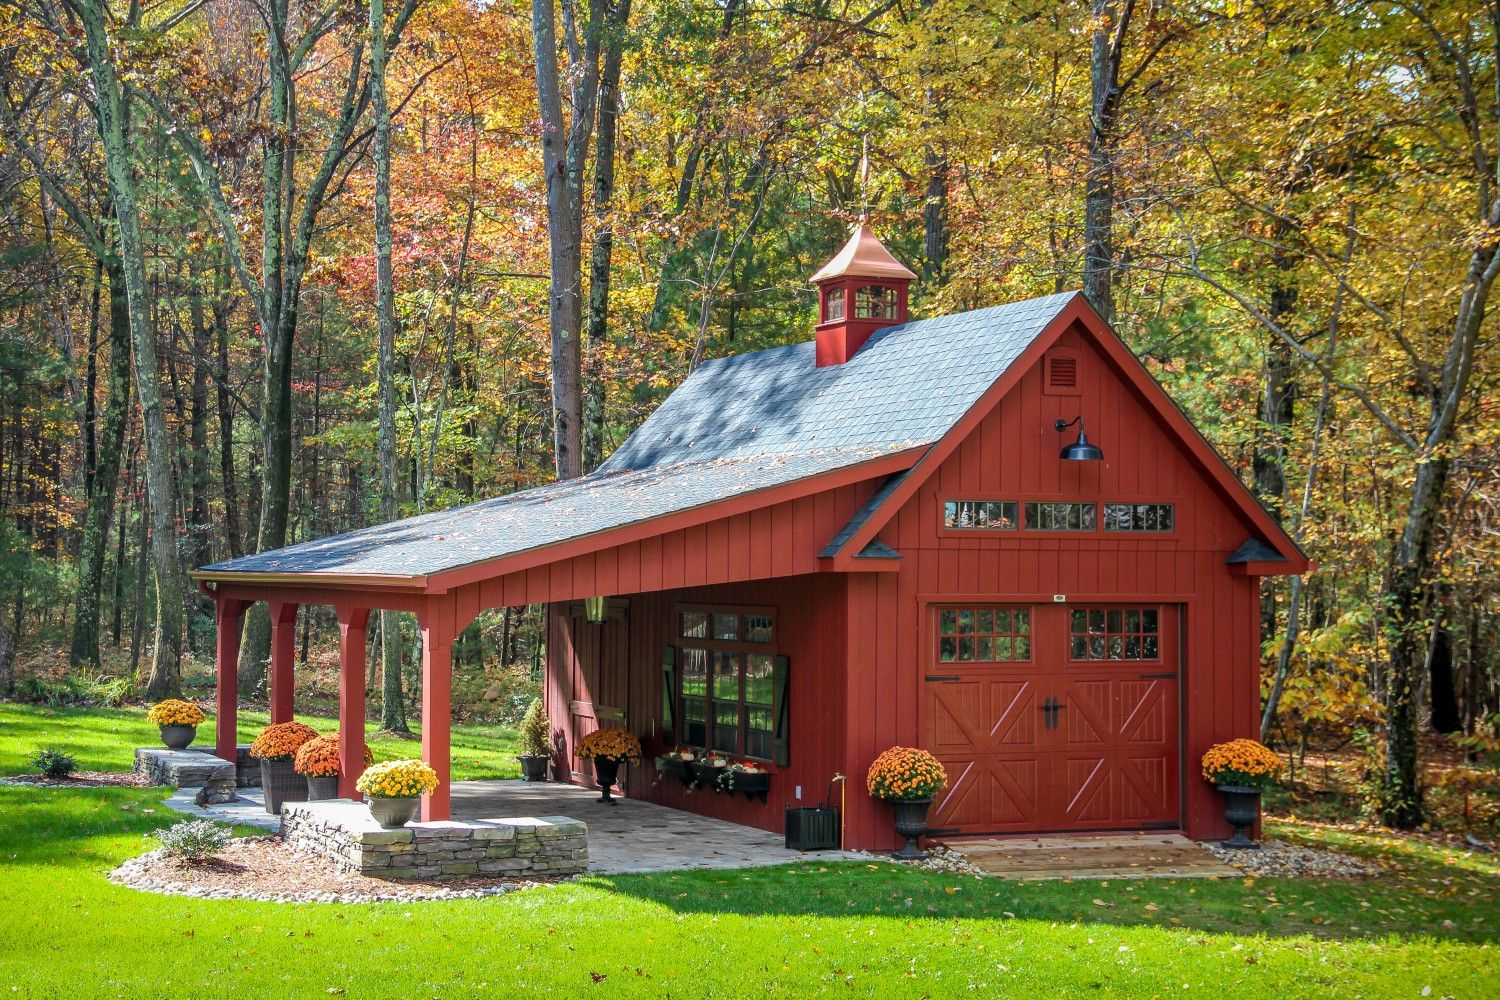 Grand victorian sheds storage buildings garages the barn yard da barn pinterest - Barn house decor ...